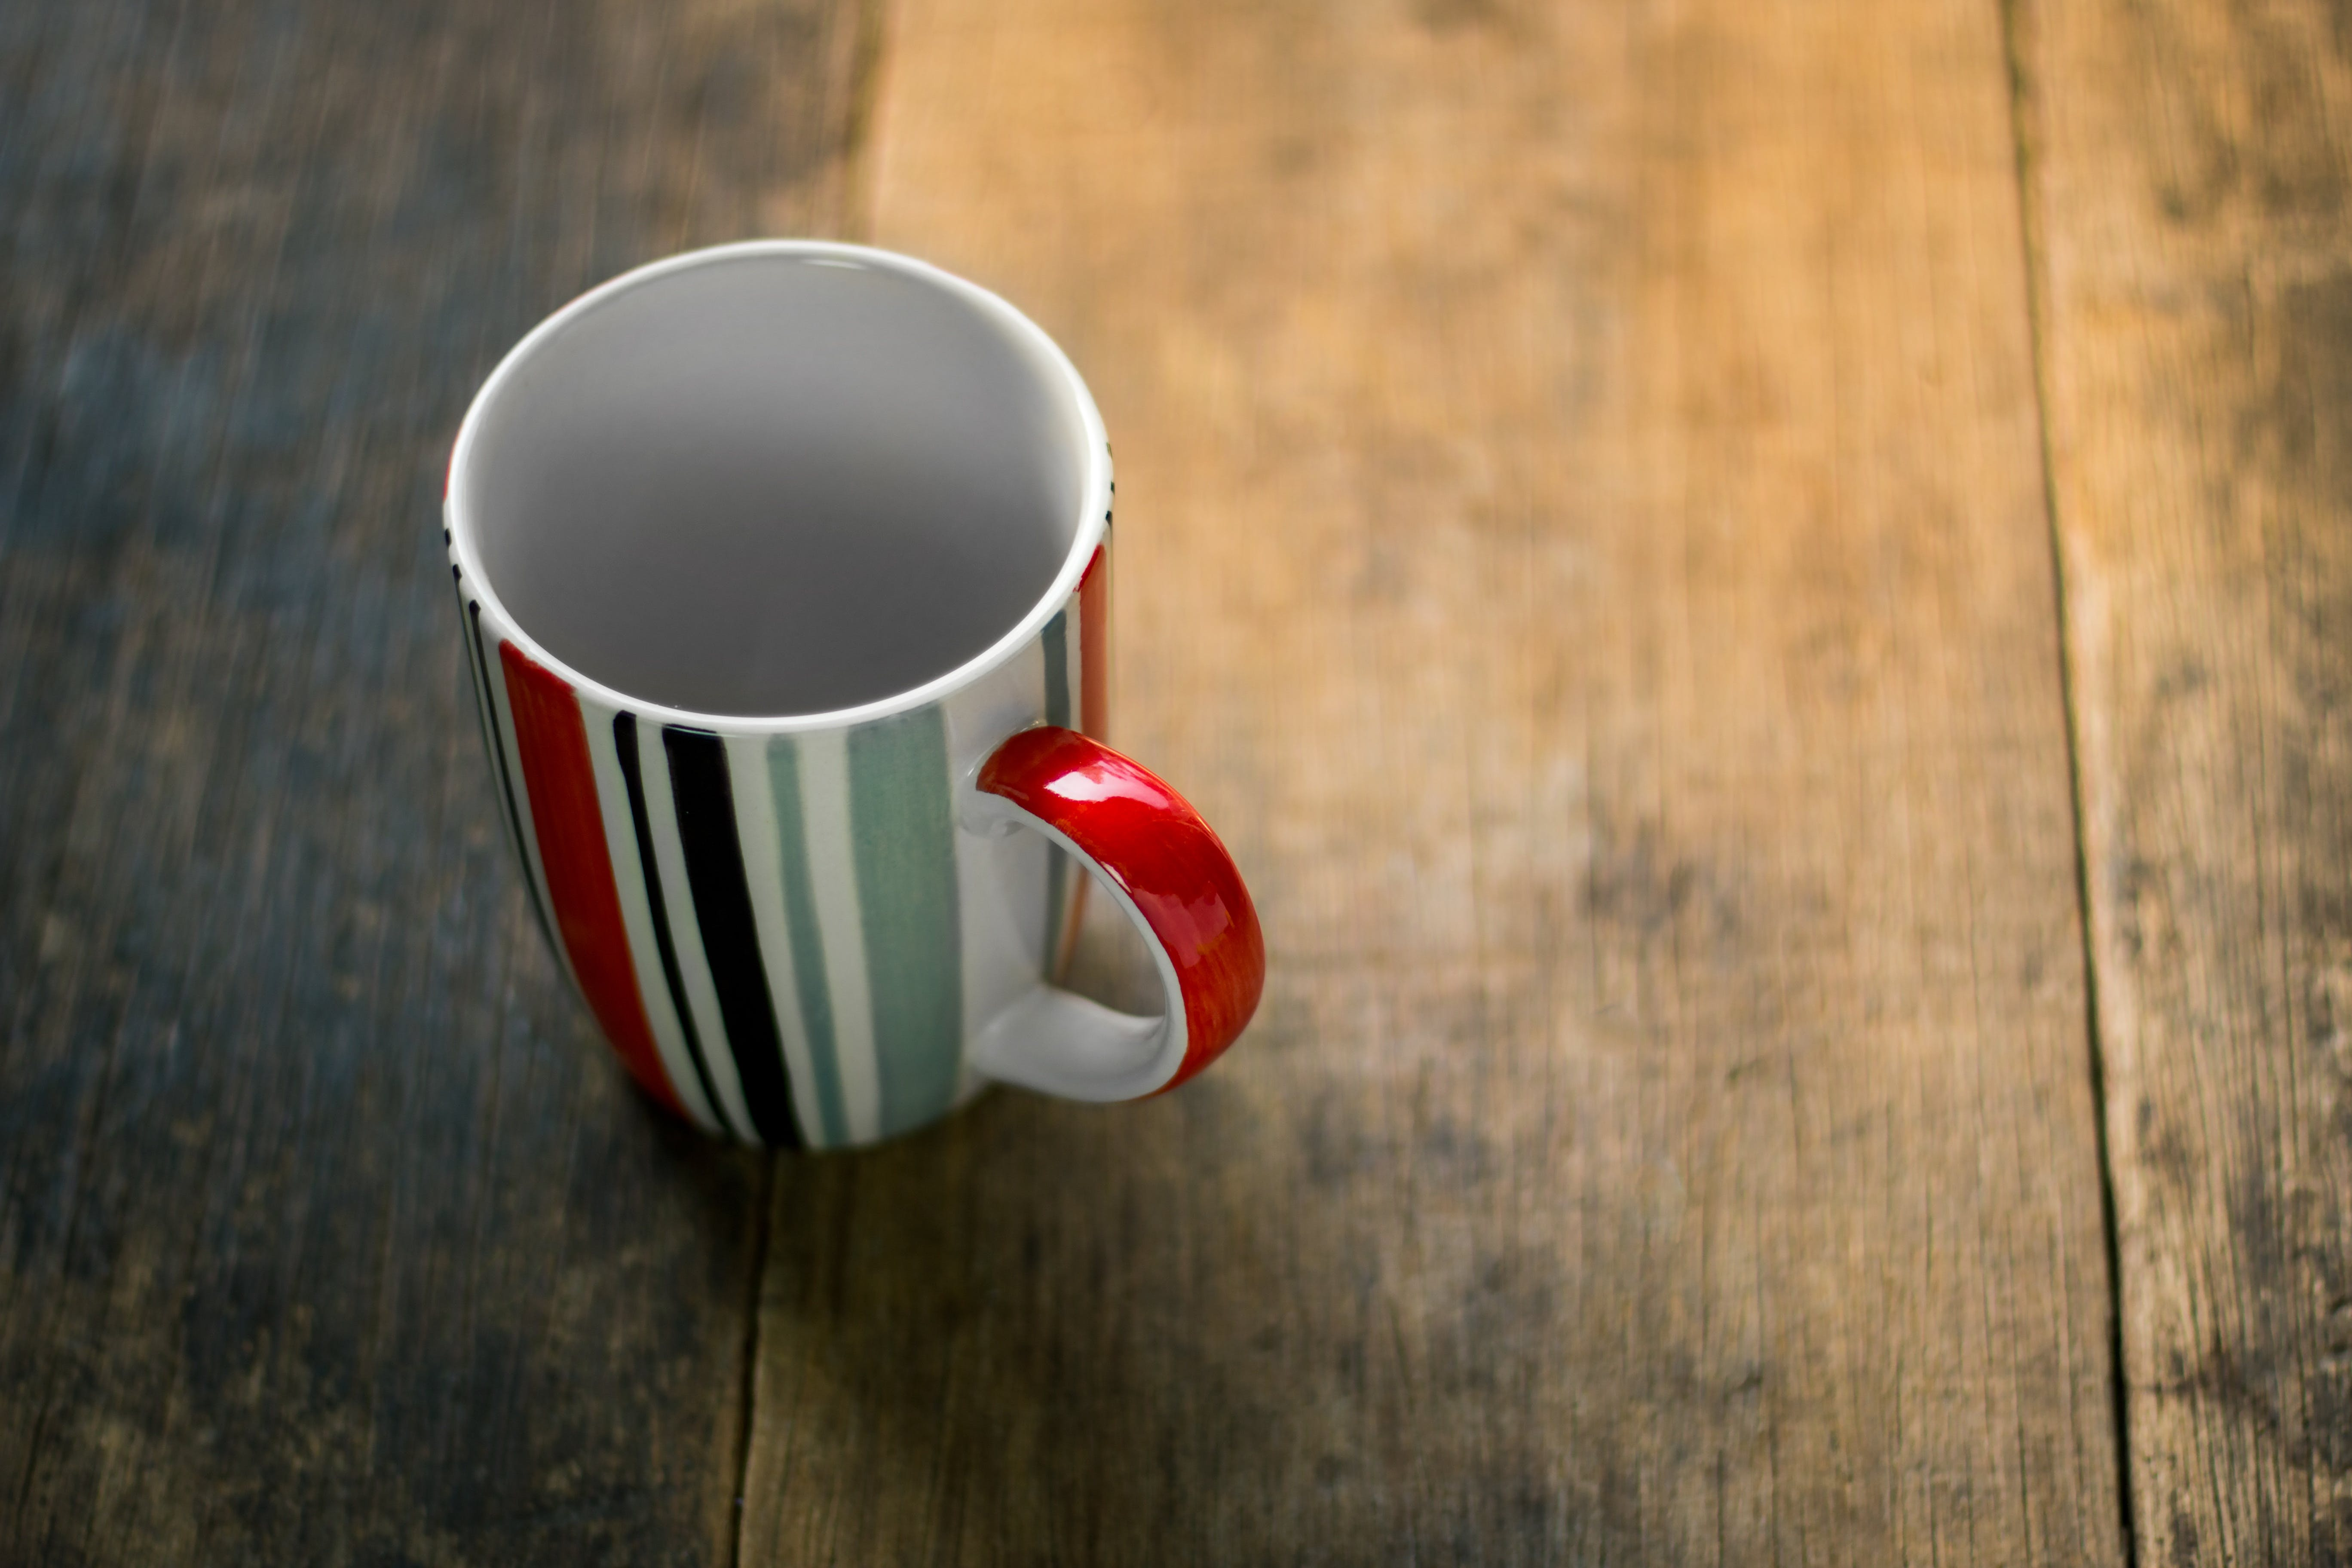 Red and White Striped Ceramic Mug on Brown Surface